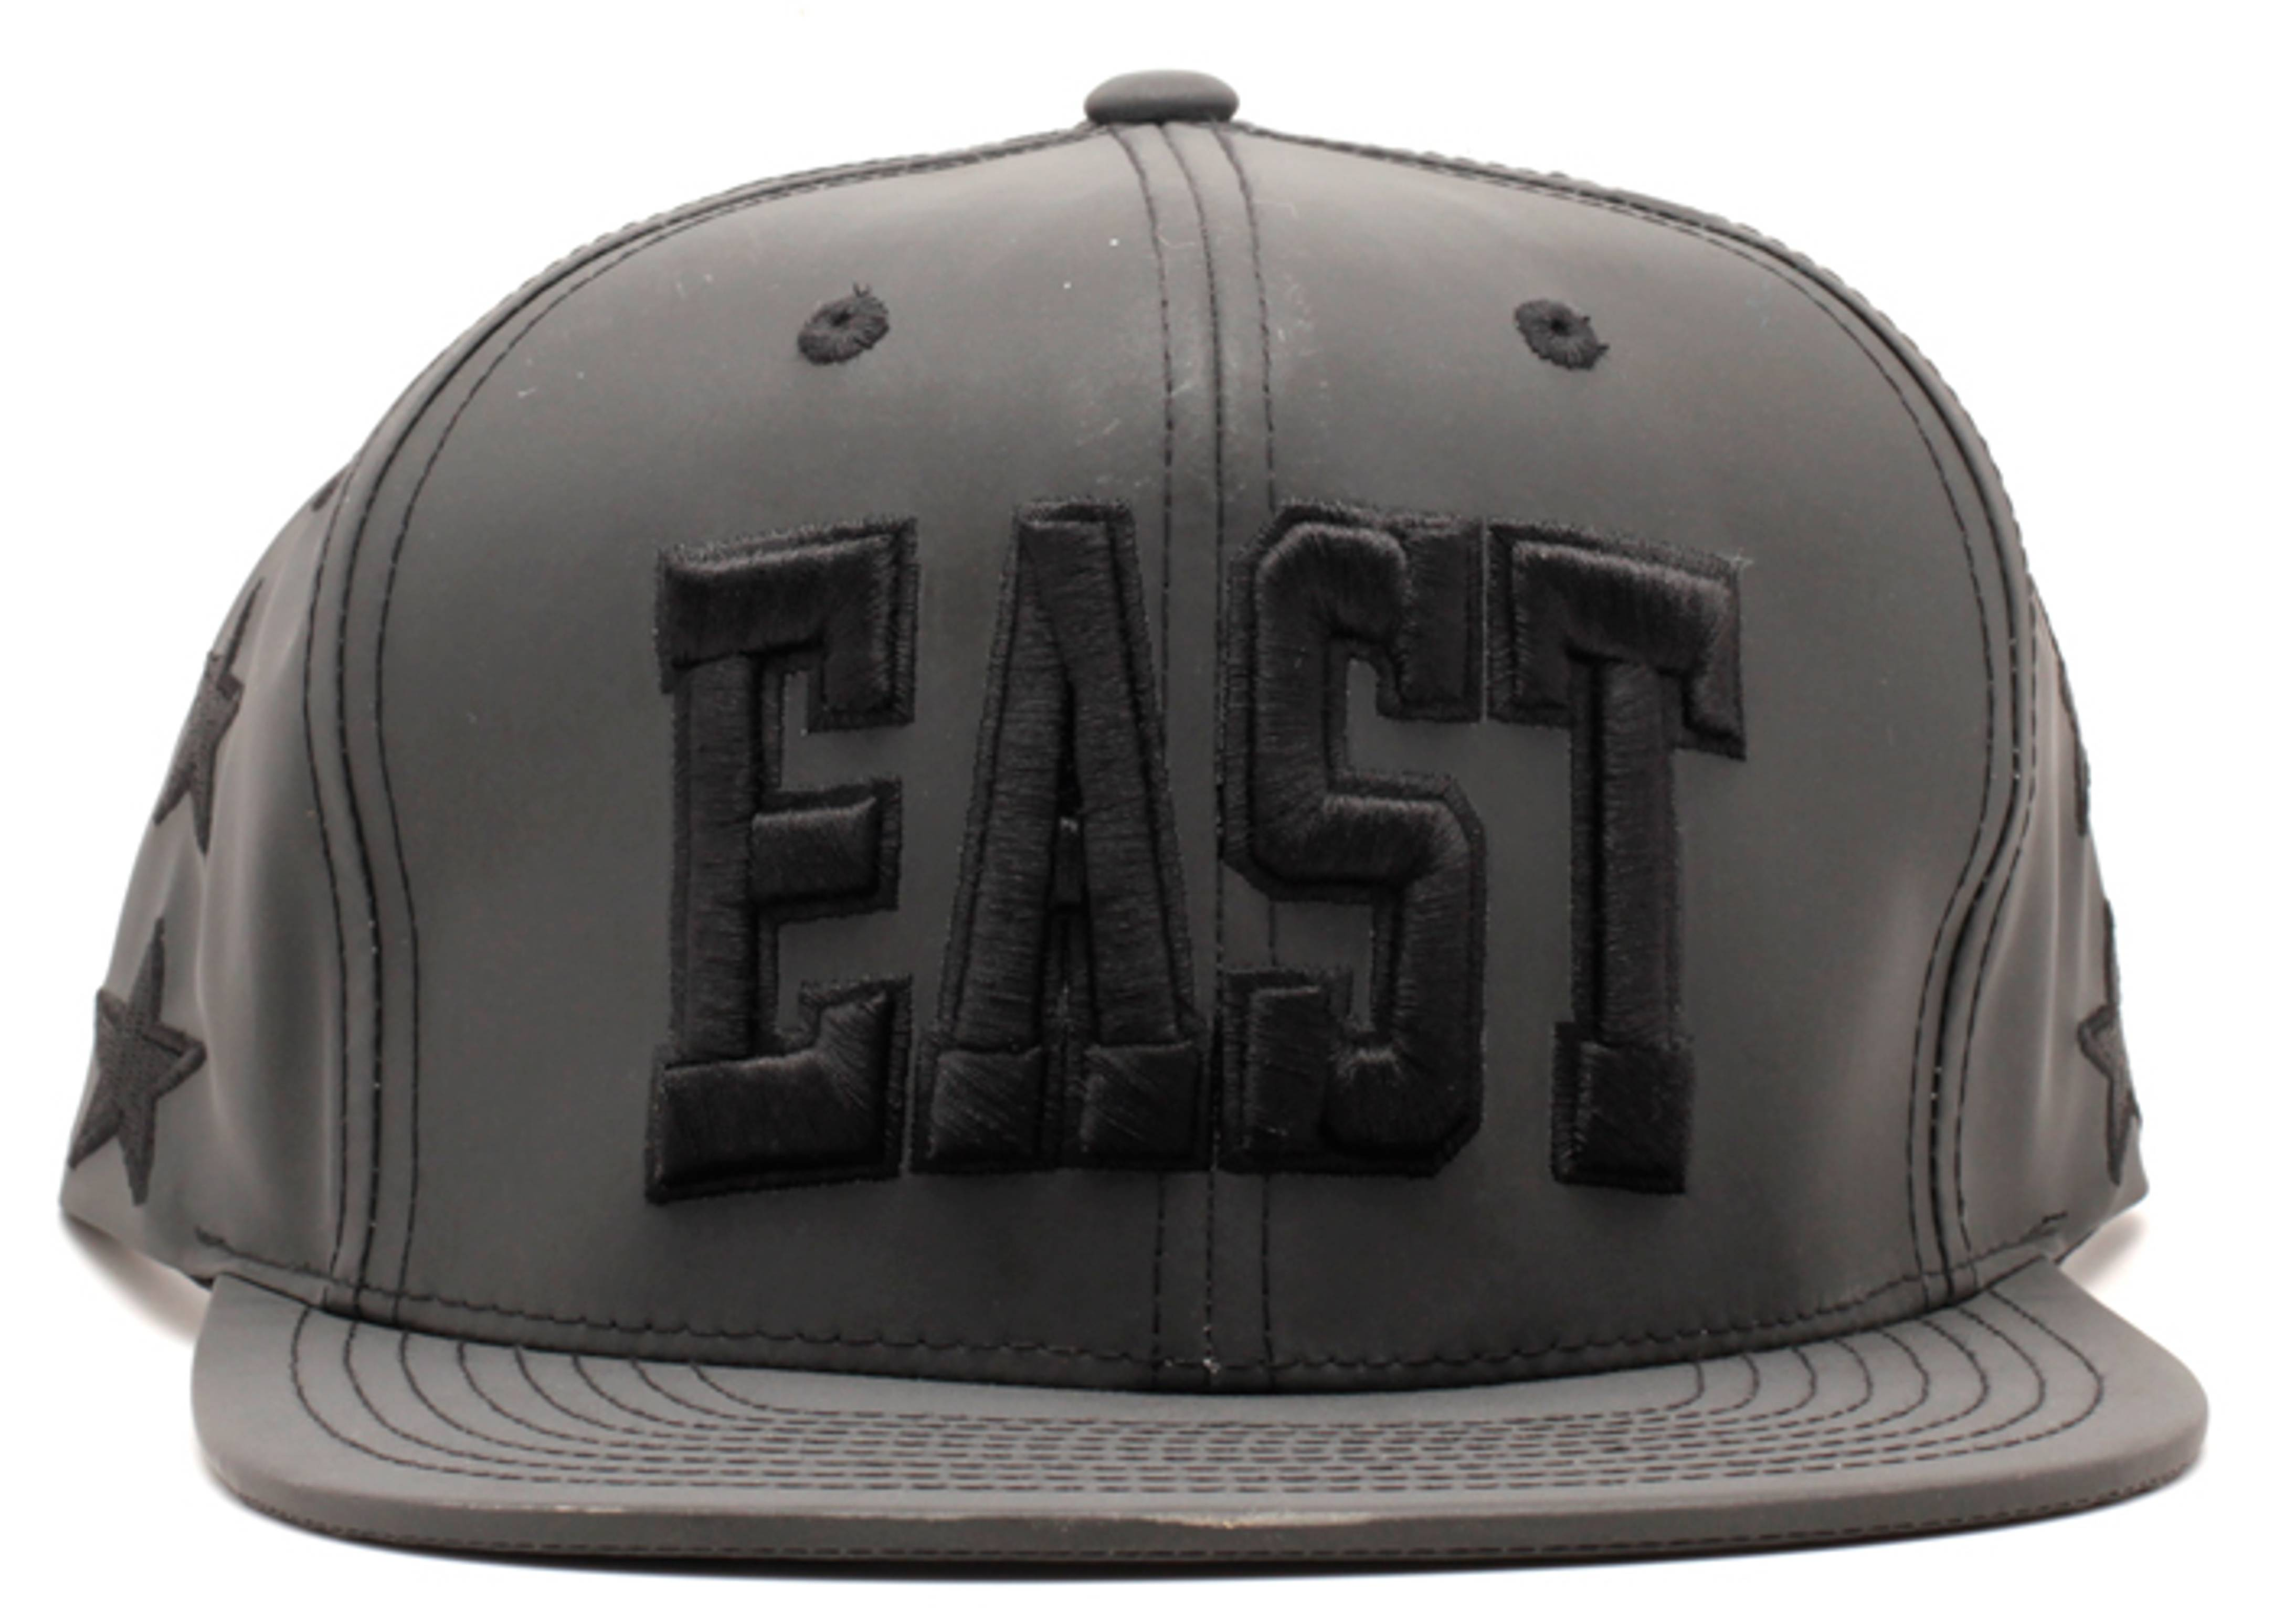 "1989 EAST nba all-star game east strap-back ""3m crown"""